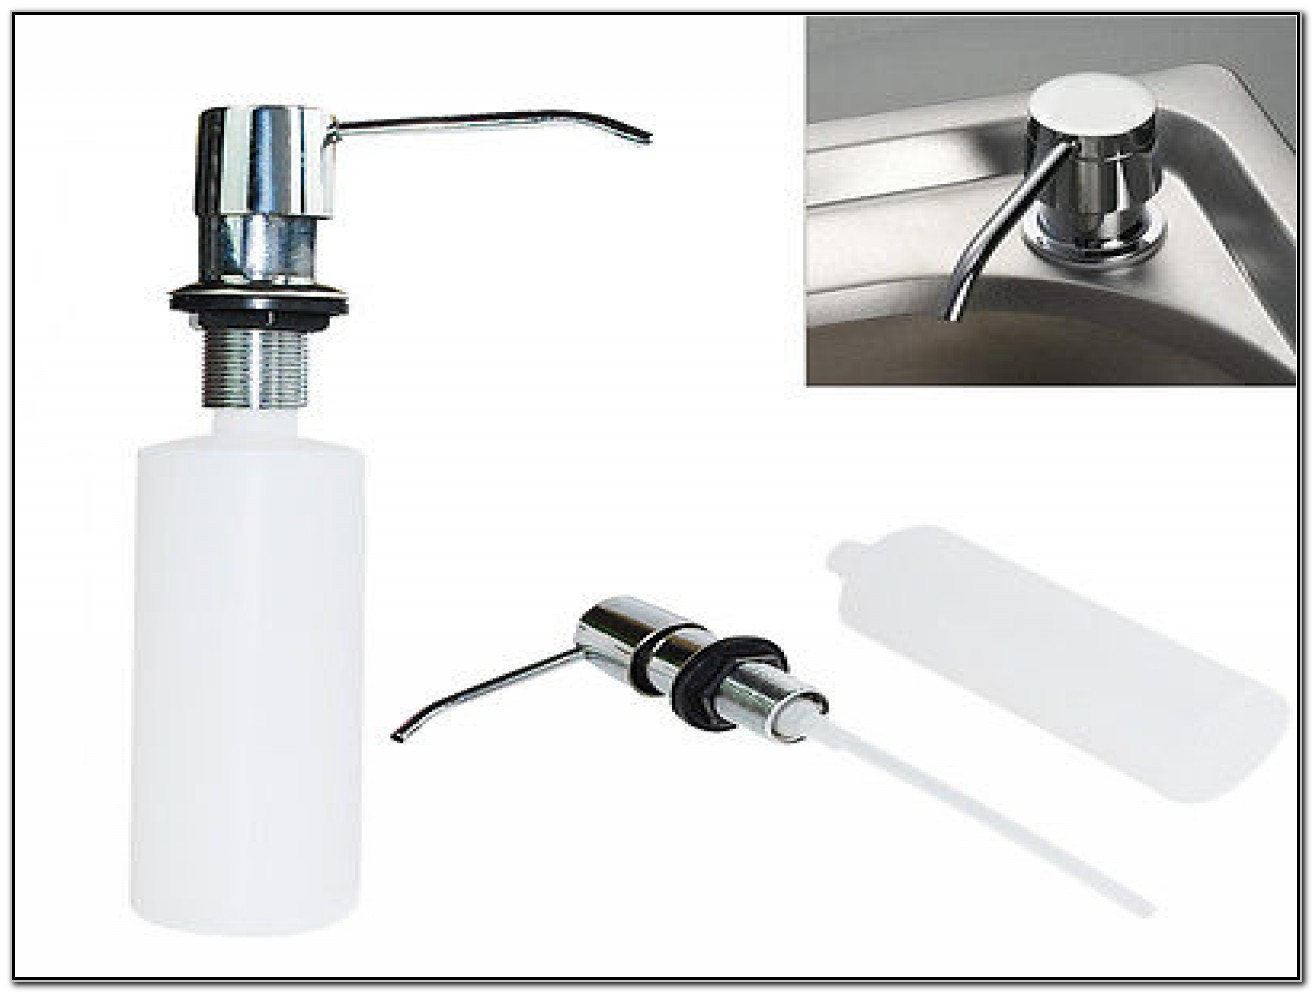 Moen Kitchen Sink Soap Dispenser Bottle